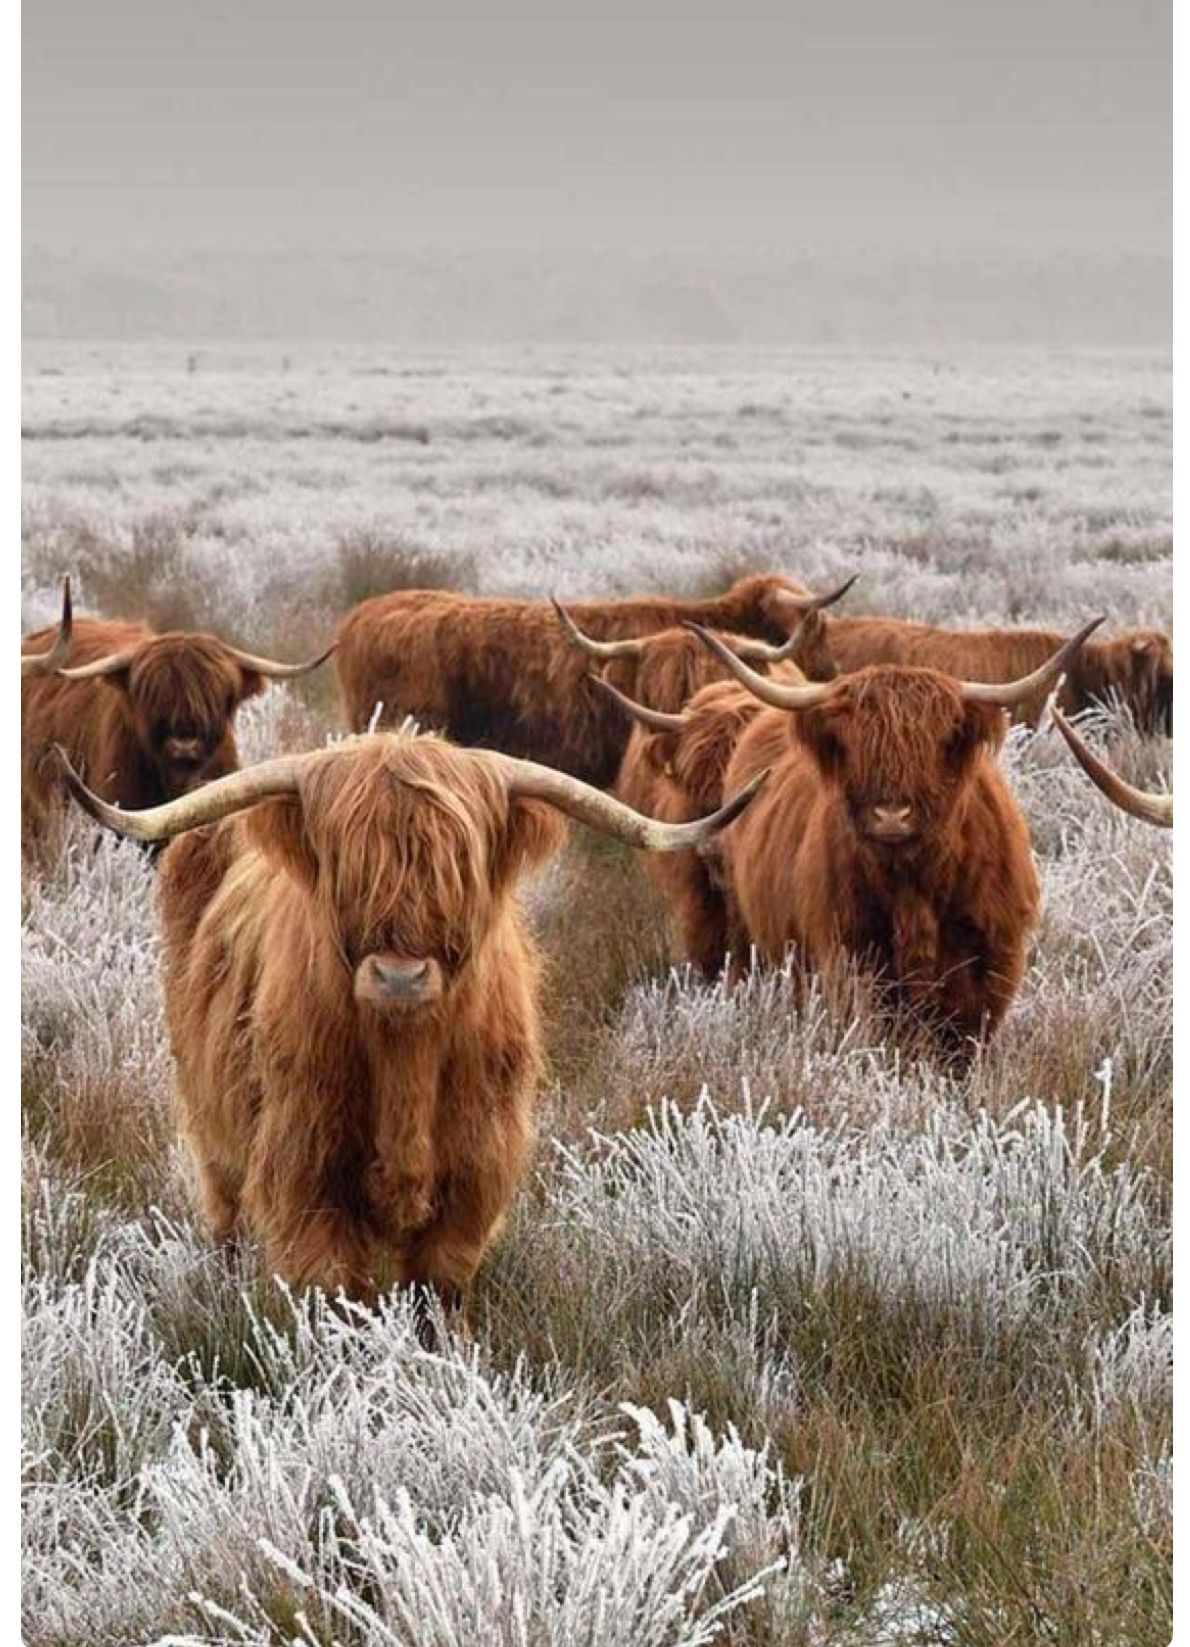 A herd of (wee coos) shaggy Highland cows. So cute ...